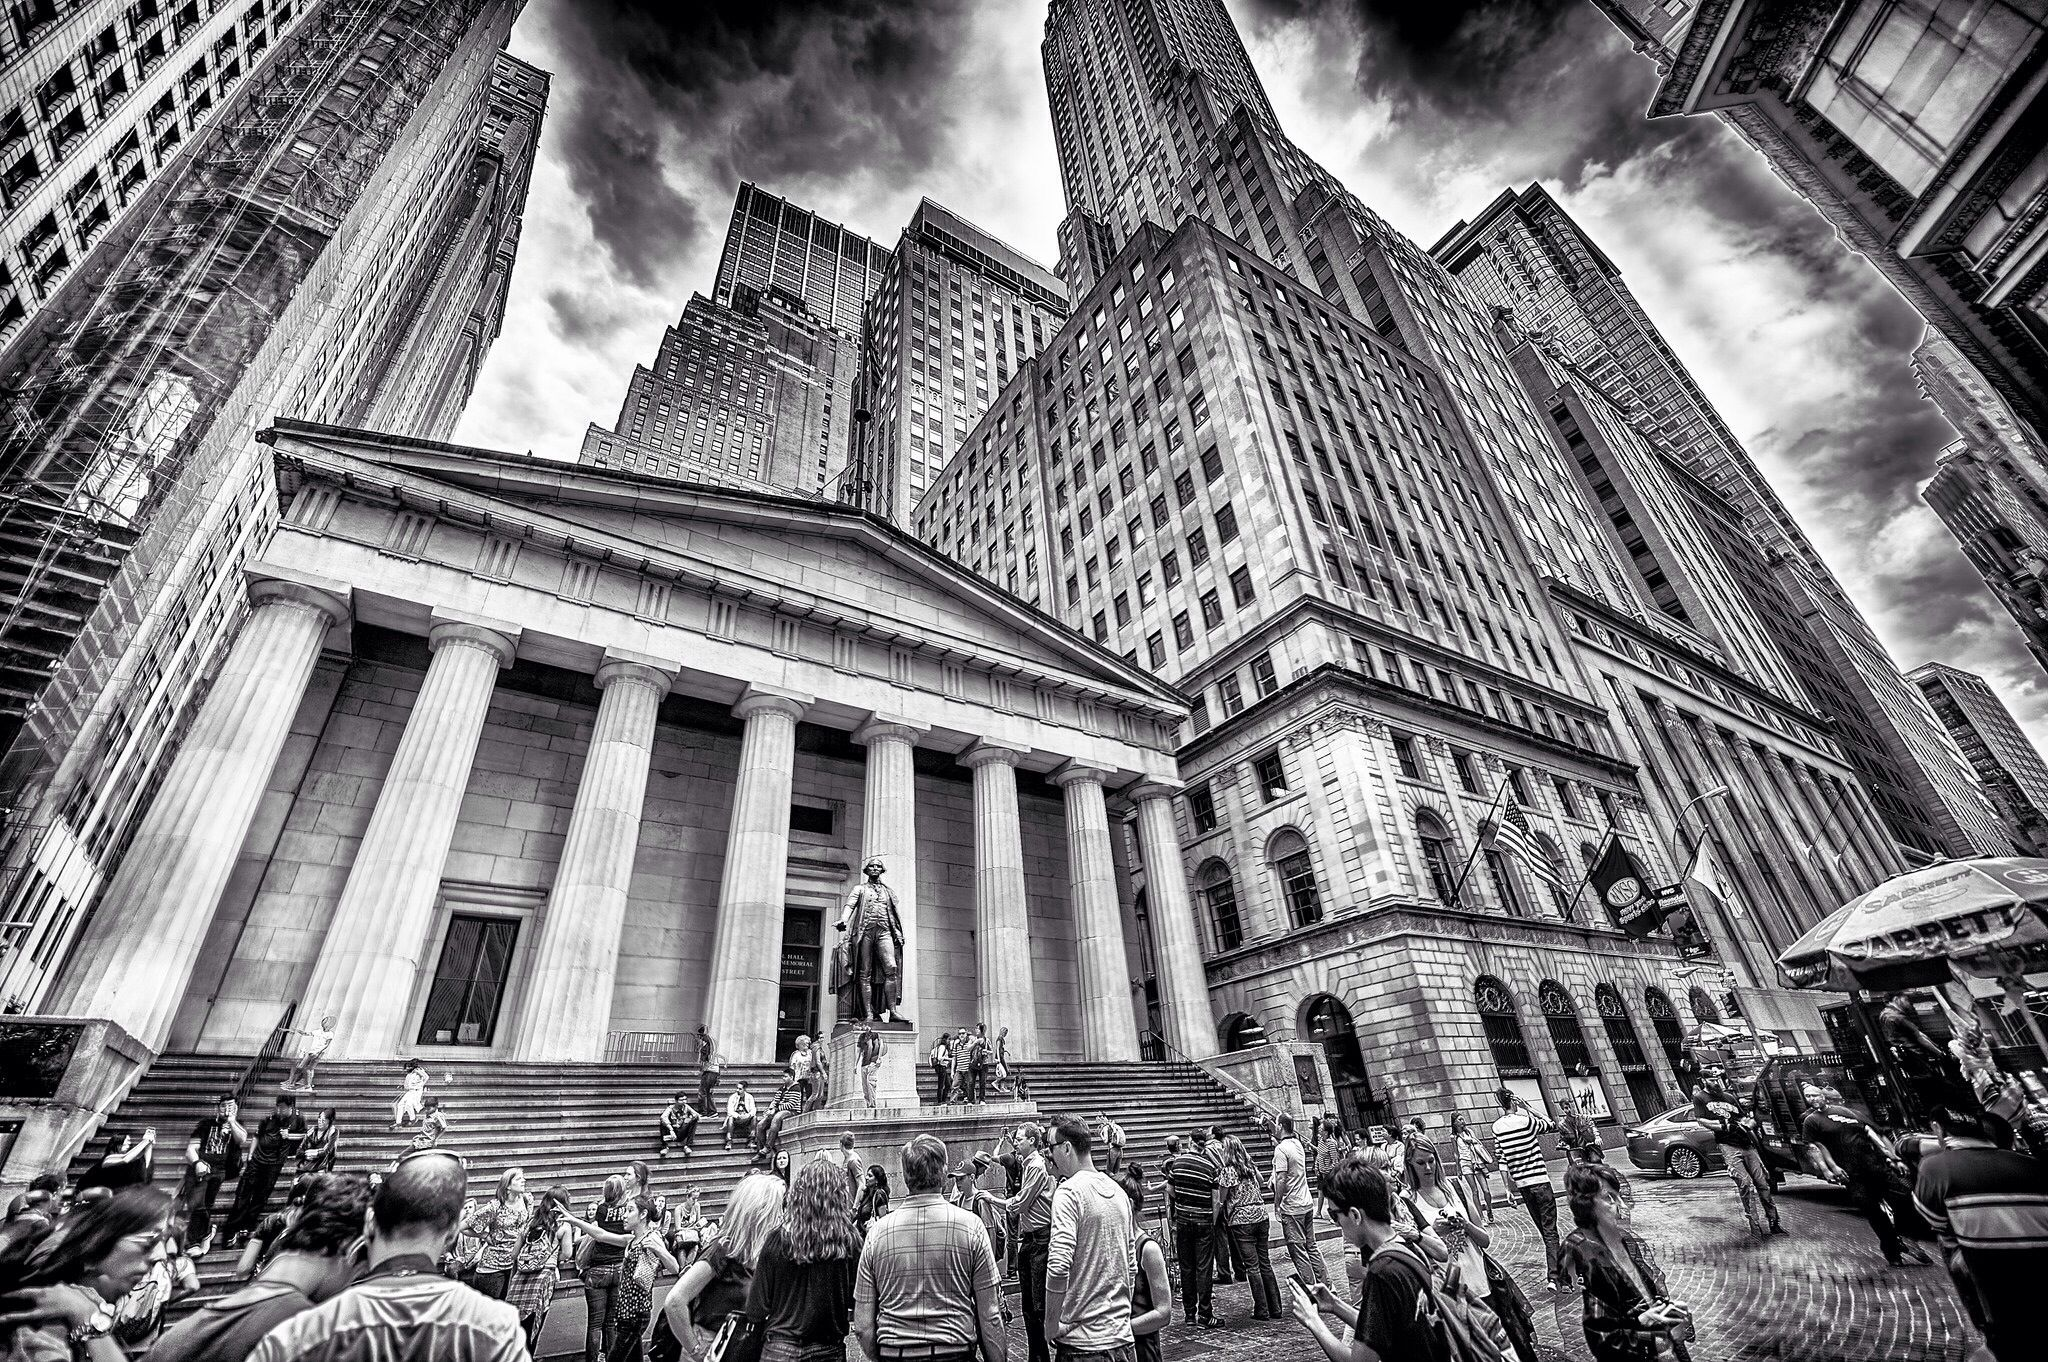 wall street new york city wall street news york city on wall street news id=50185